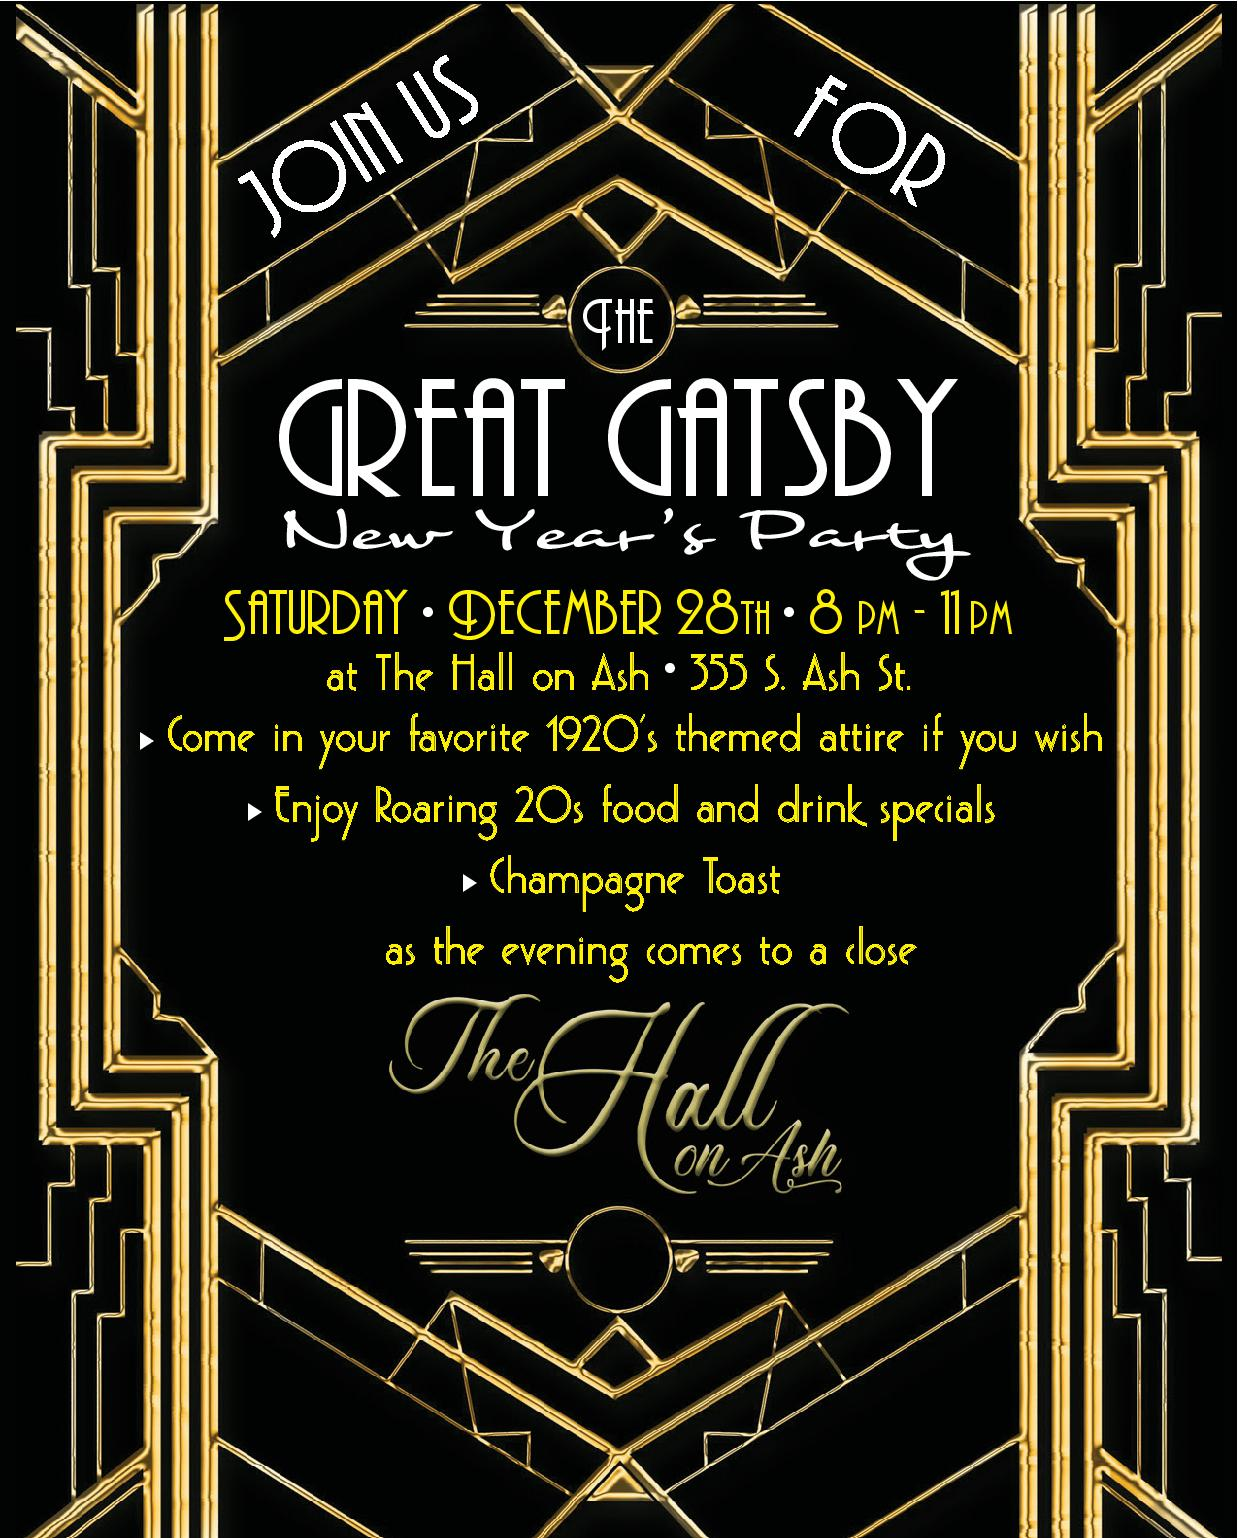 Join us For The great gatsby New Year's Party. Saturday, December 28th. 8 pm - 11 pm at The Hall on Ash. 355 S. Ash St. Come in your favorite 1920's themed attire if you wish. Enjoy Roaring 20s food and drink specials. Champagne Toast  as the evening comes to a close. The hall on Ash.